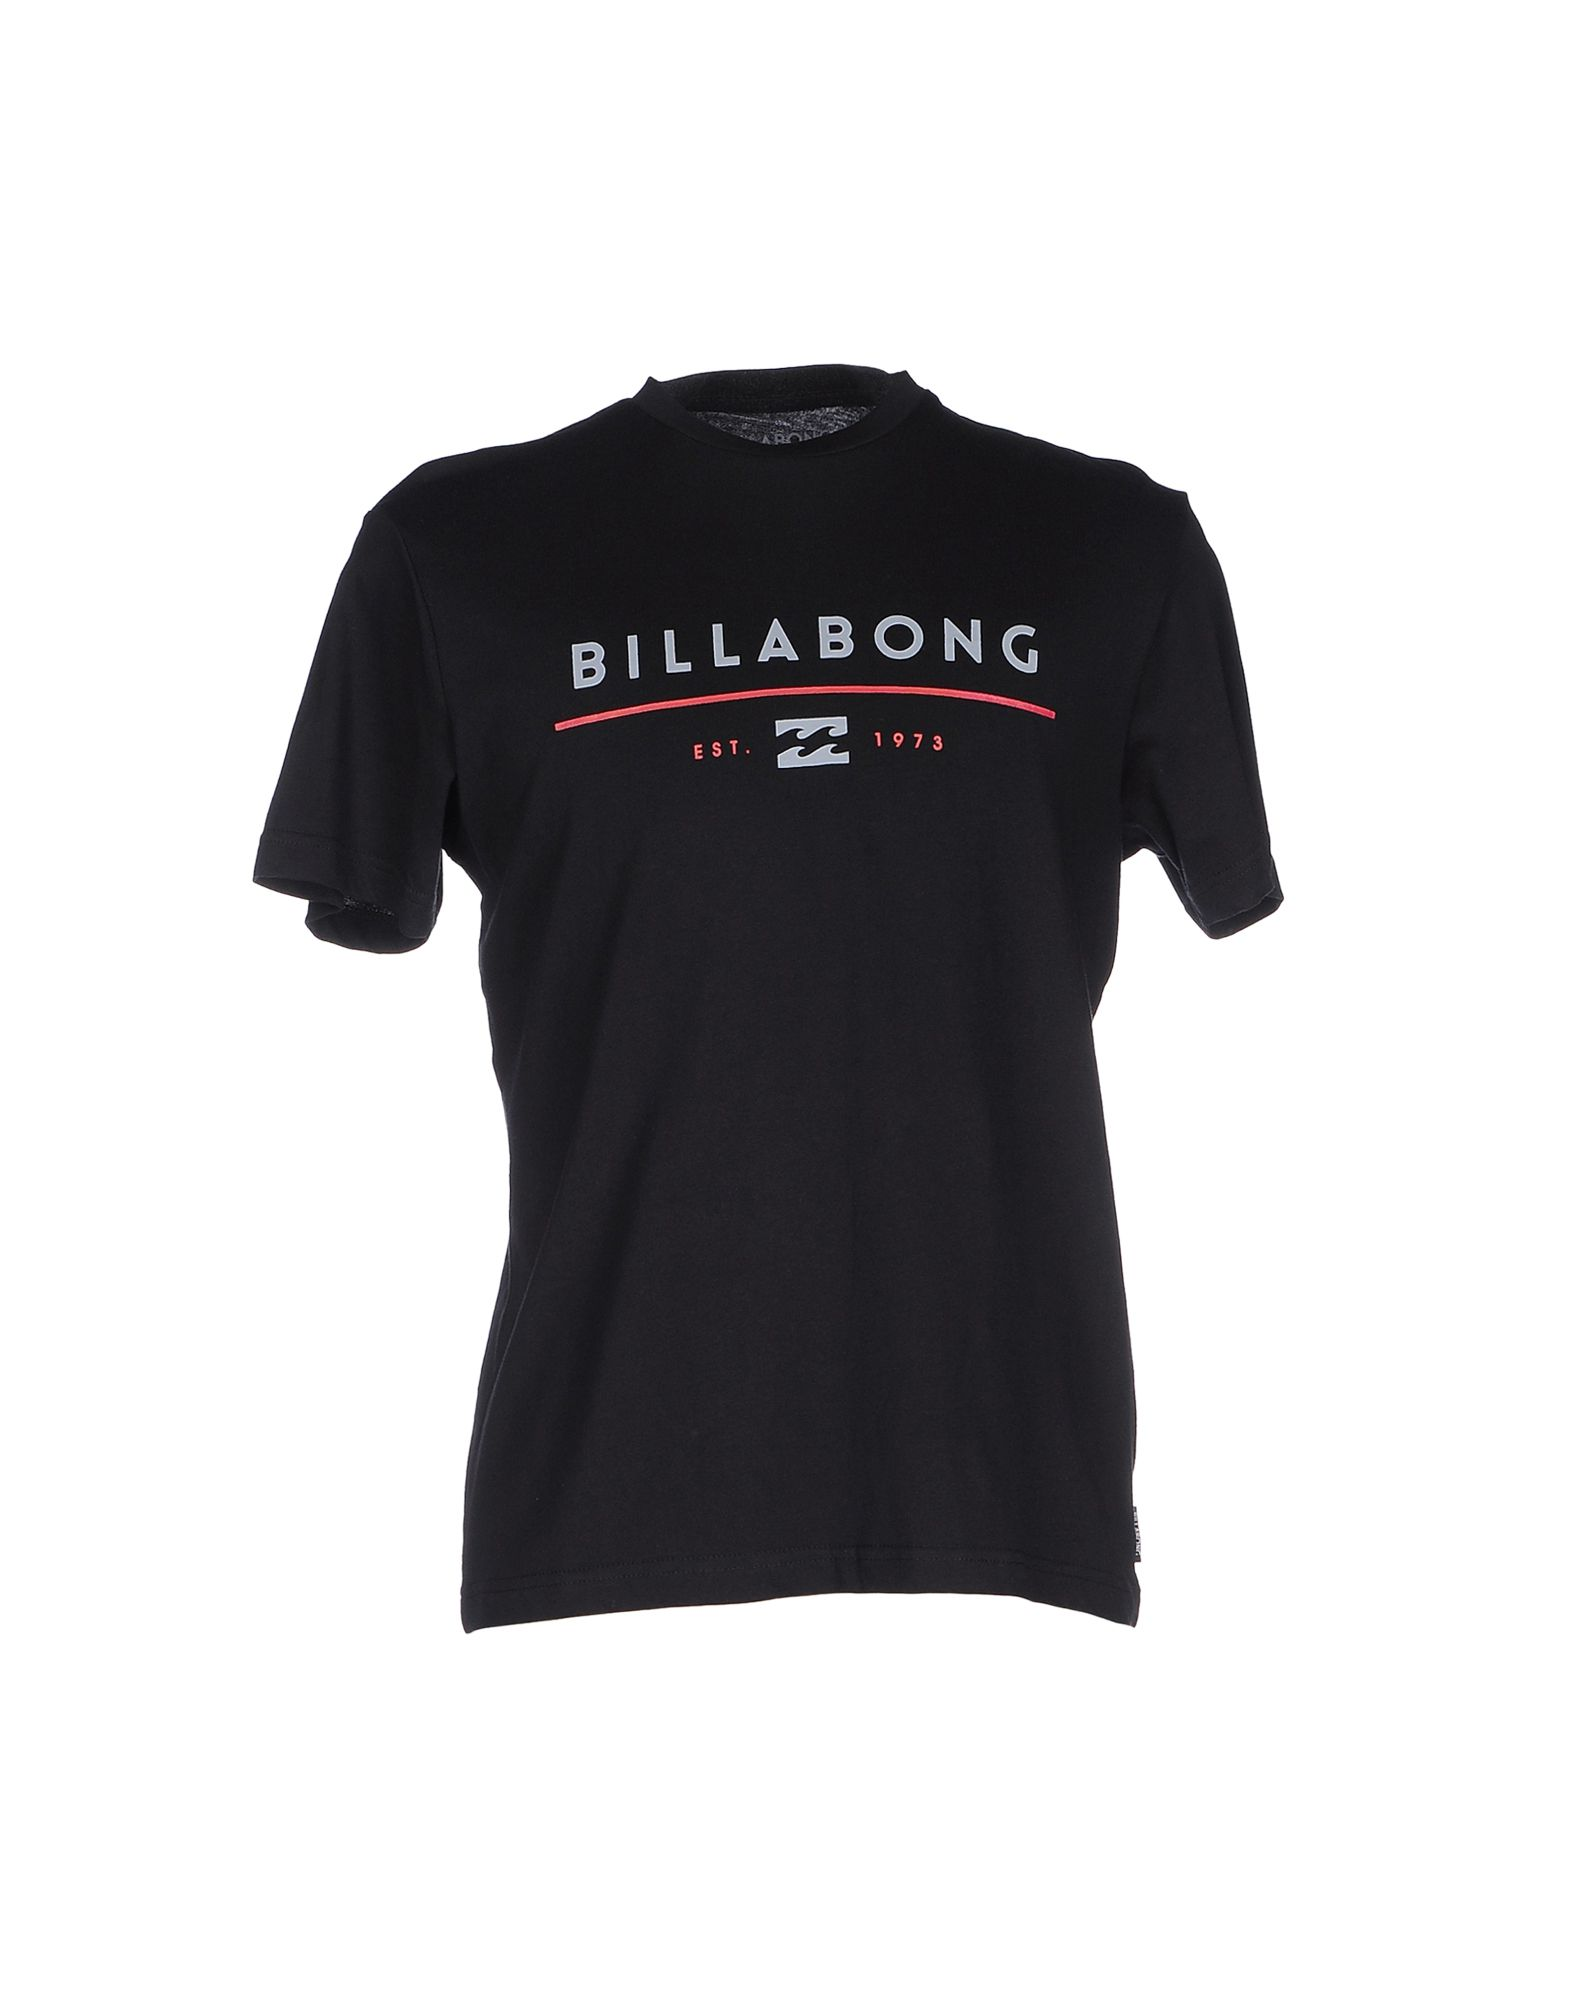 BILLABONG Футболка футболка billabong billabong bi009embkru3